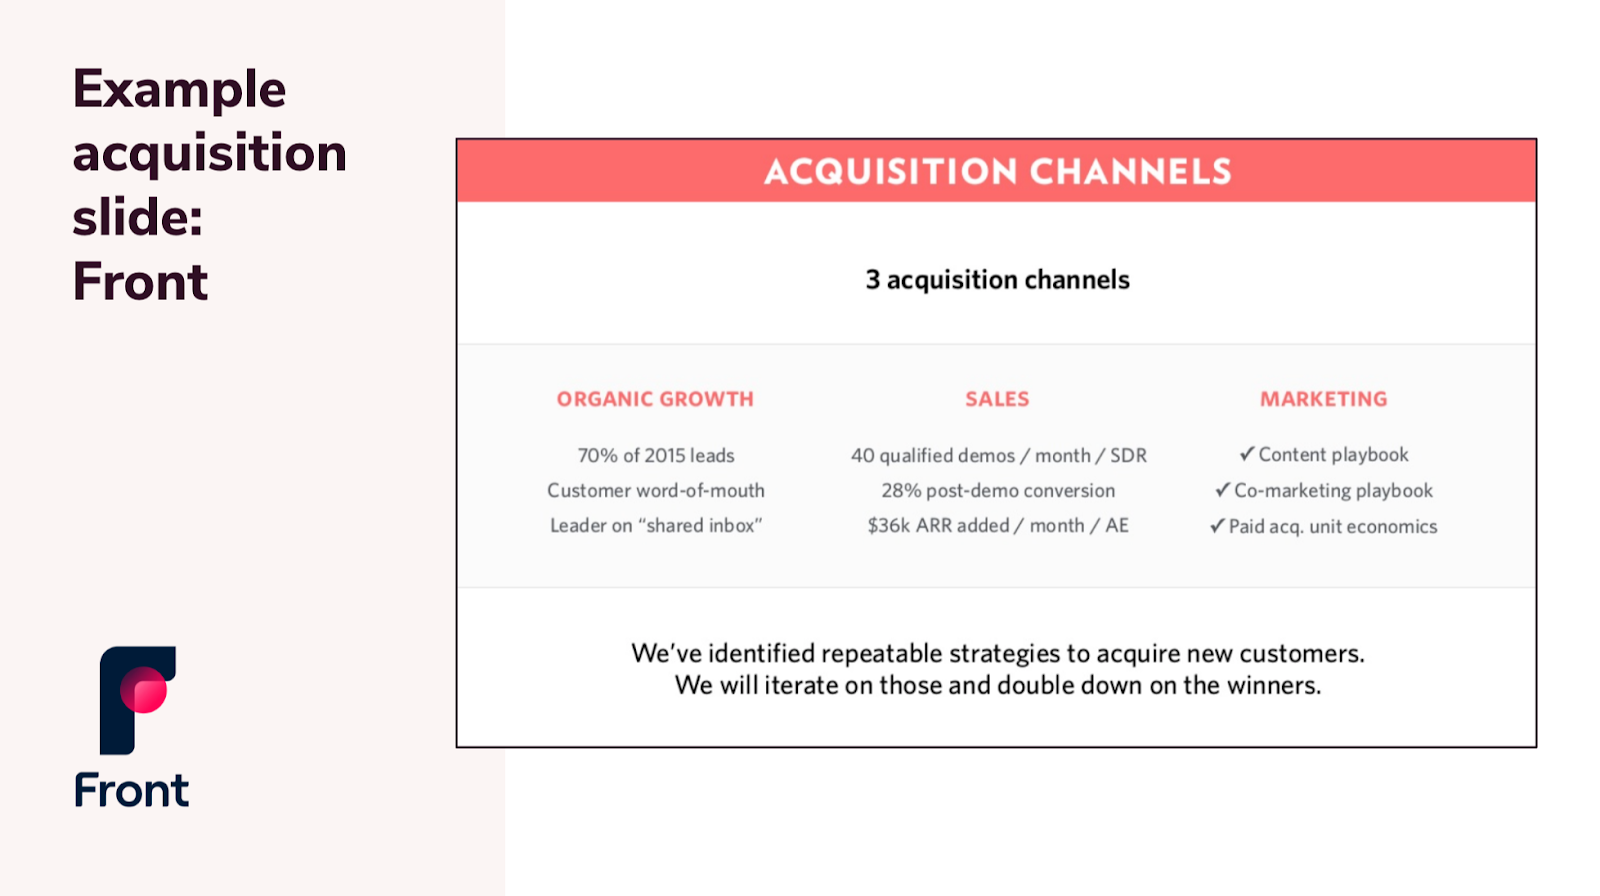 Go-to-market - acquisition channels by Front